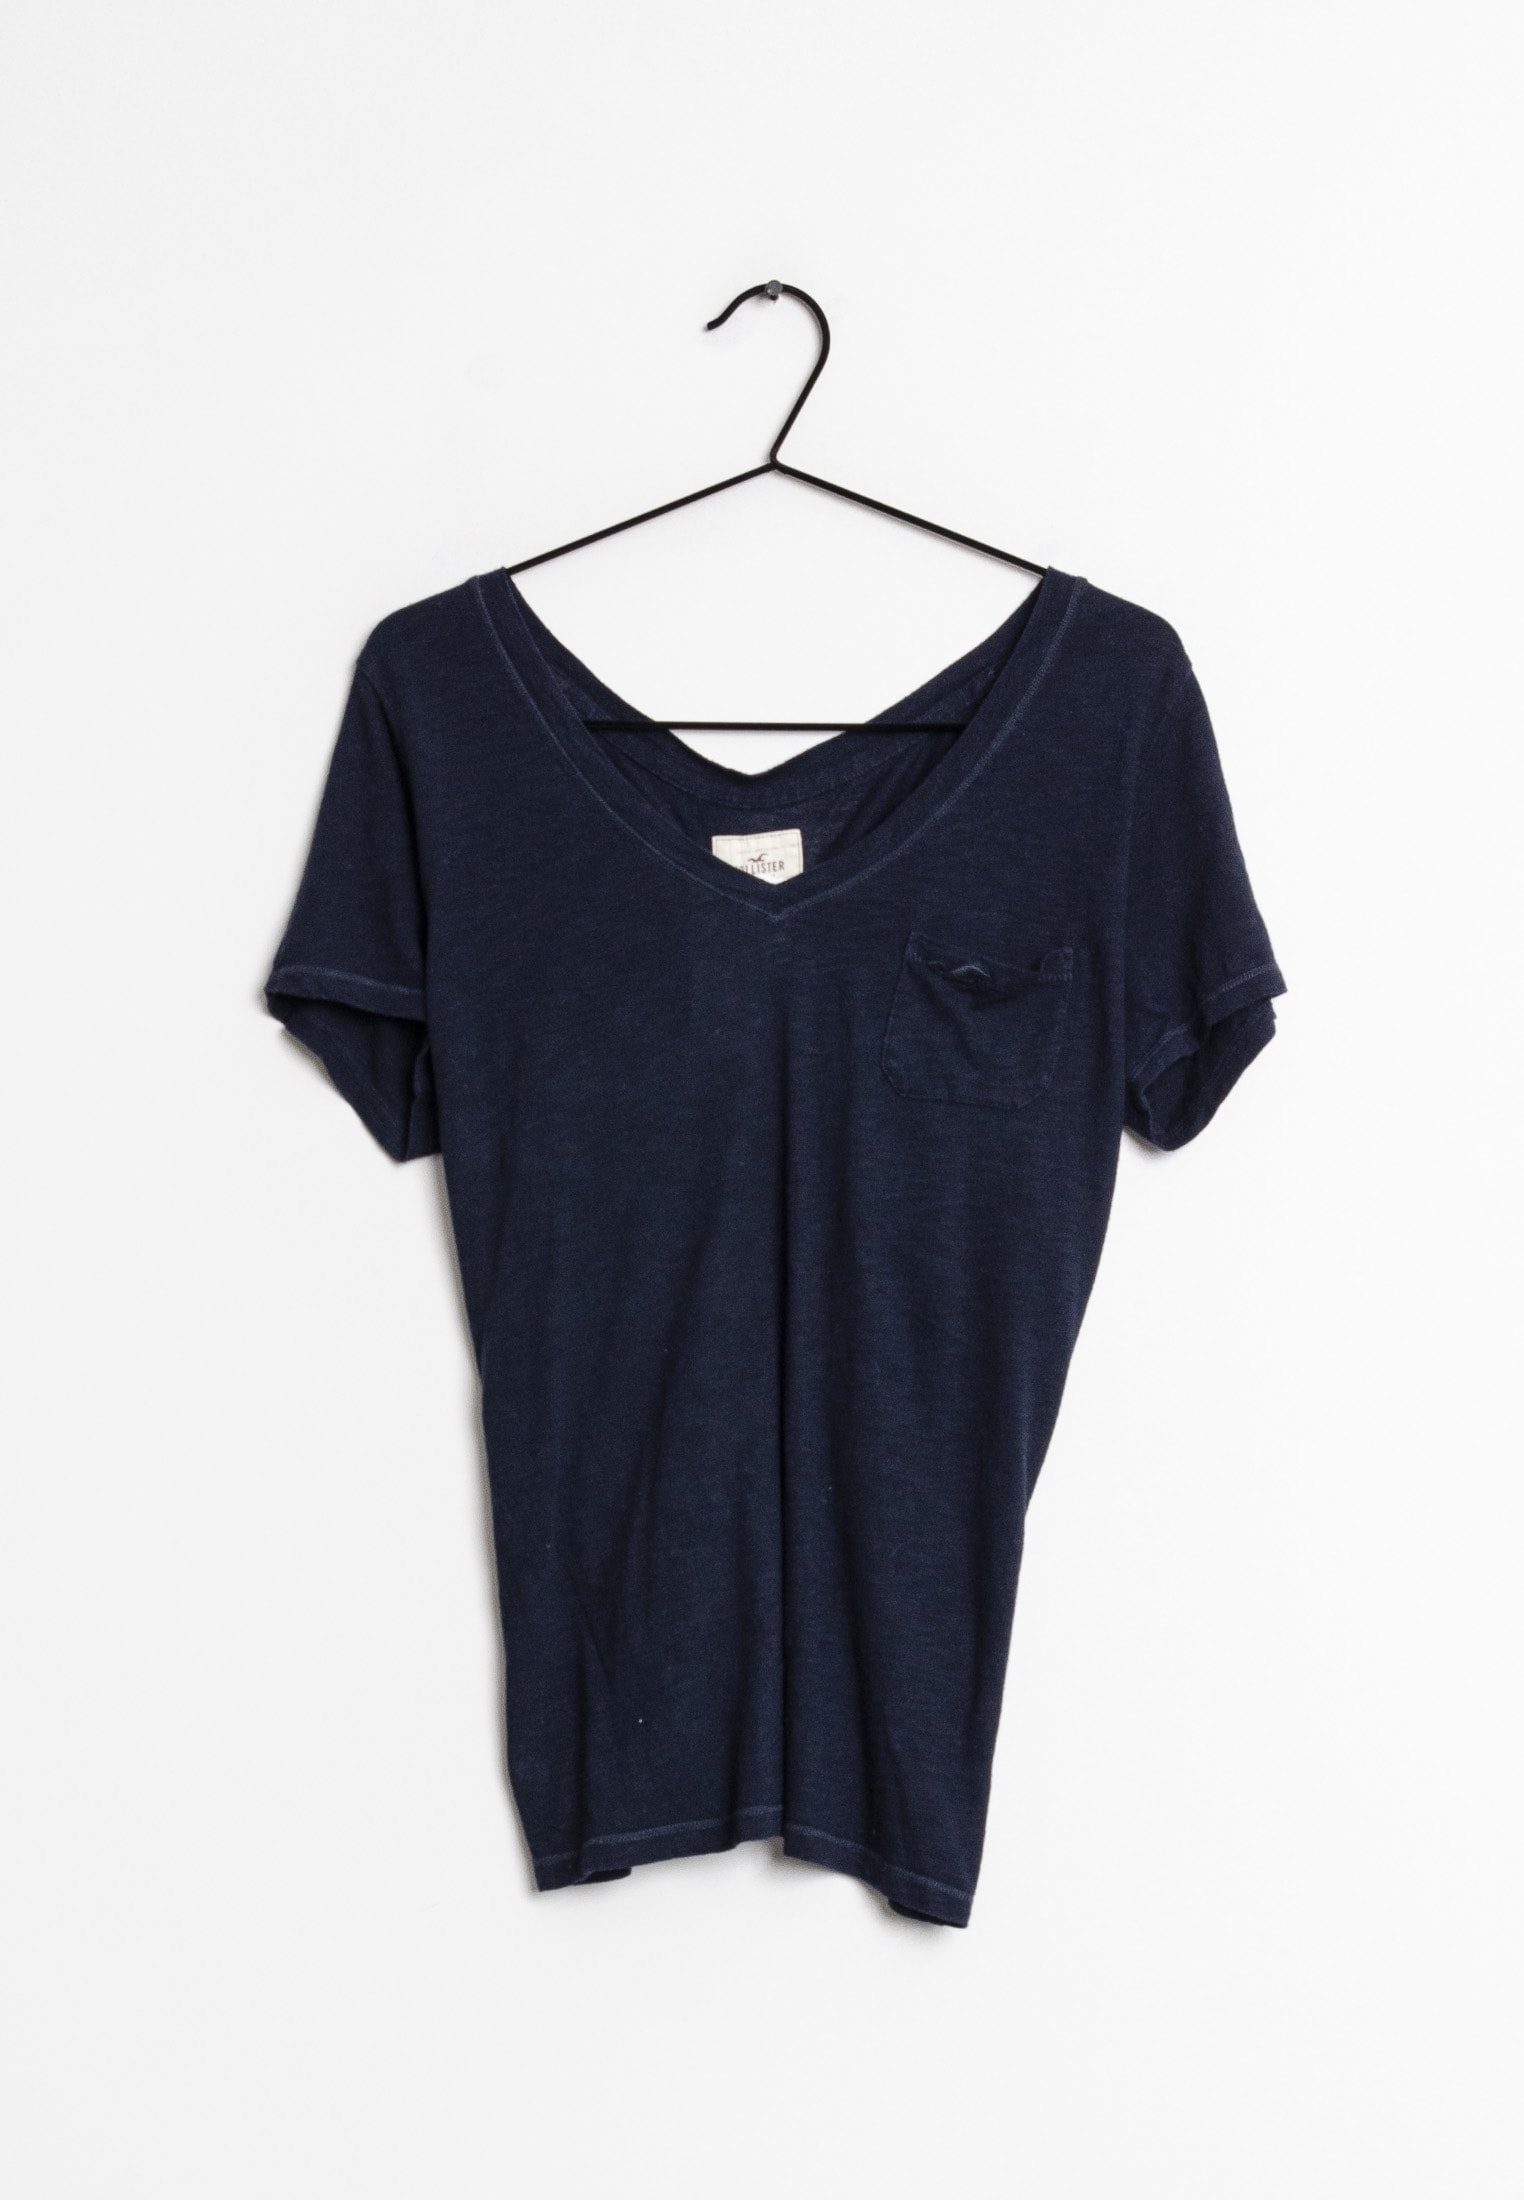 Hollister Co. T-Shirt Blau Gr.L